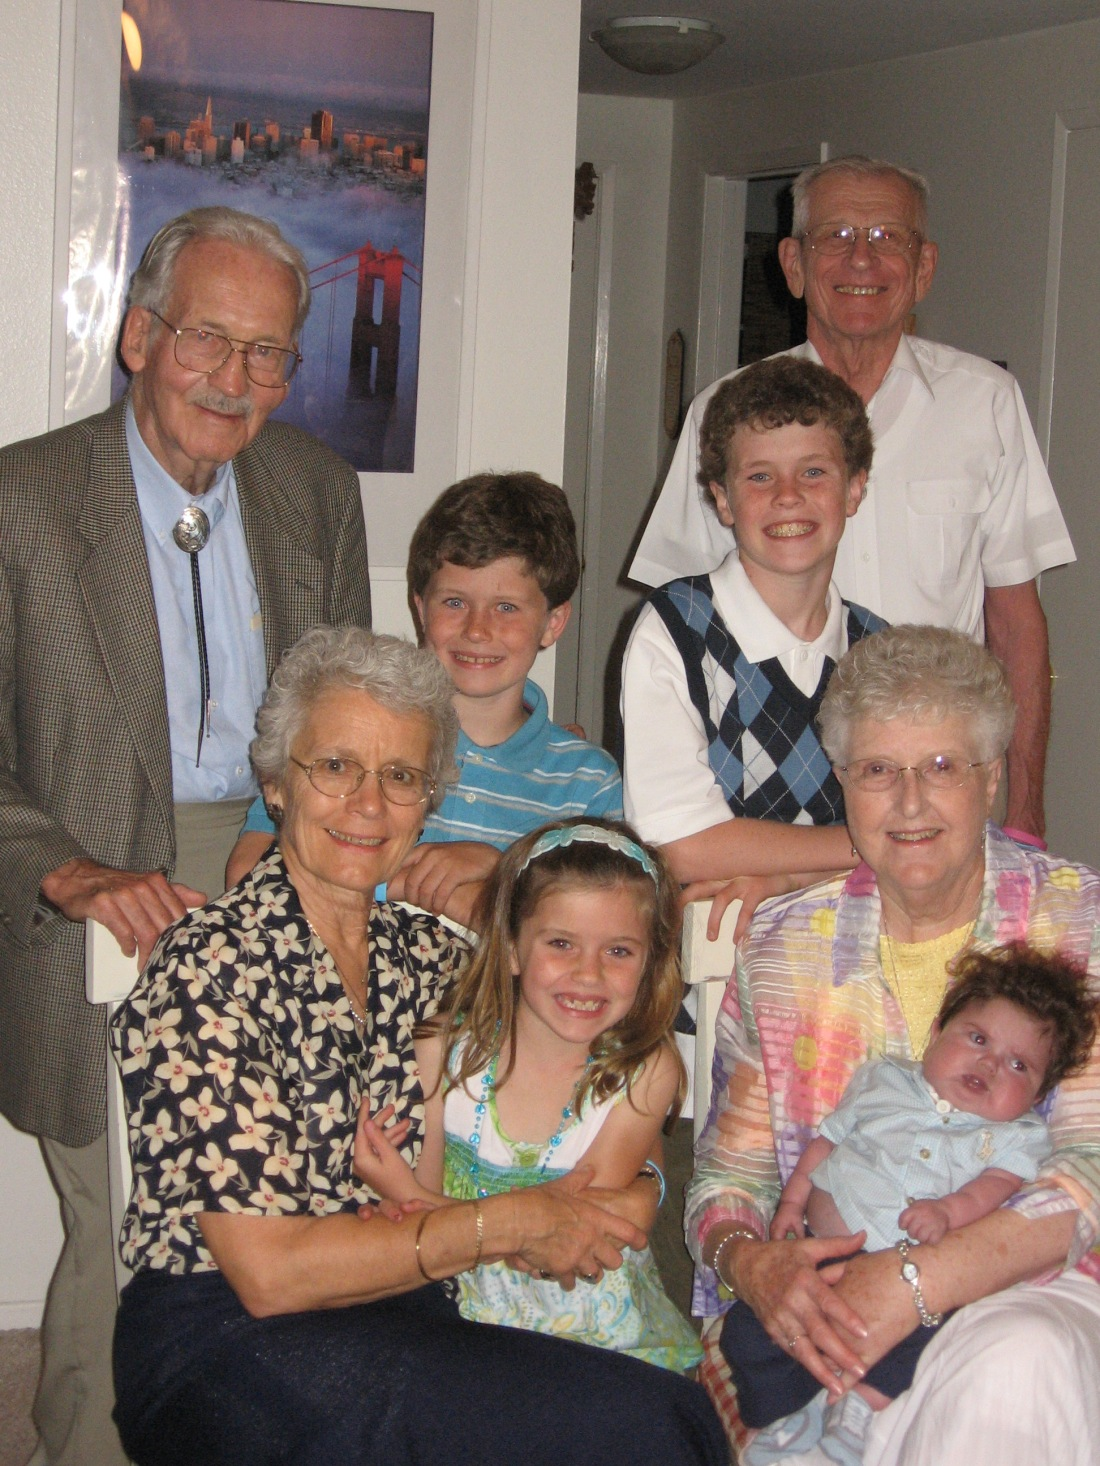 Special time with Oma & Opa and G'ma & G'pa